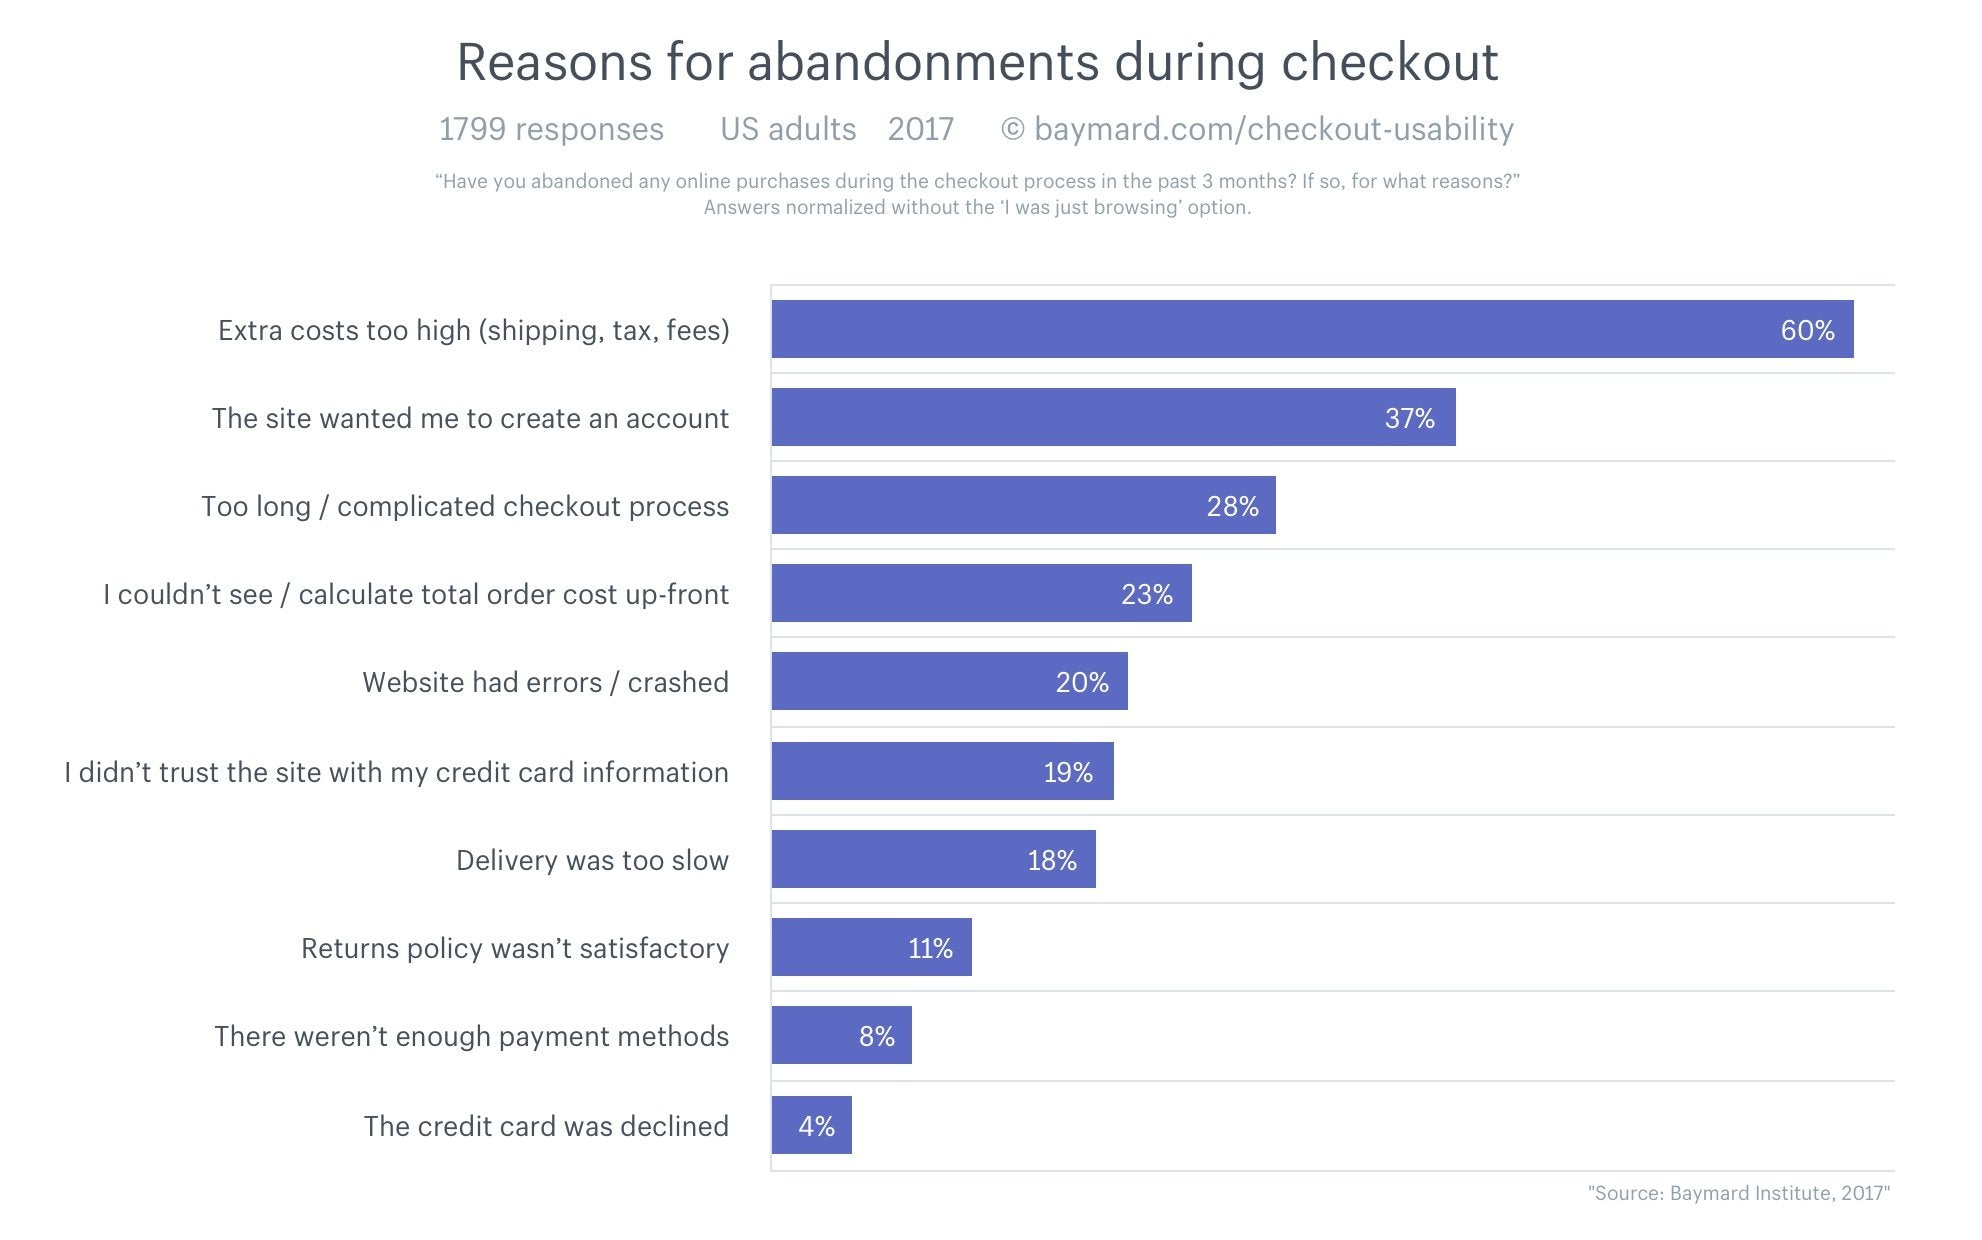 Reasons for cart abandonment.